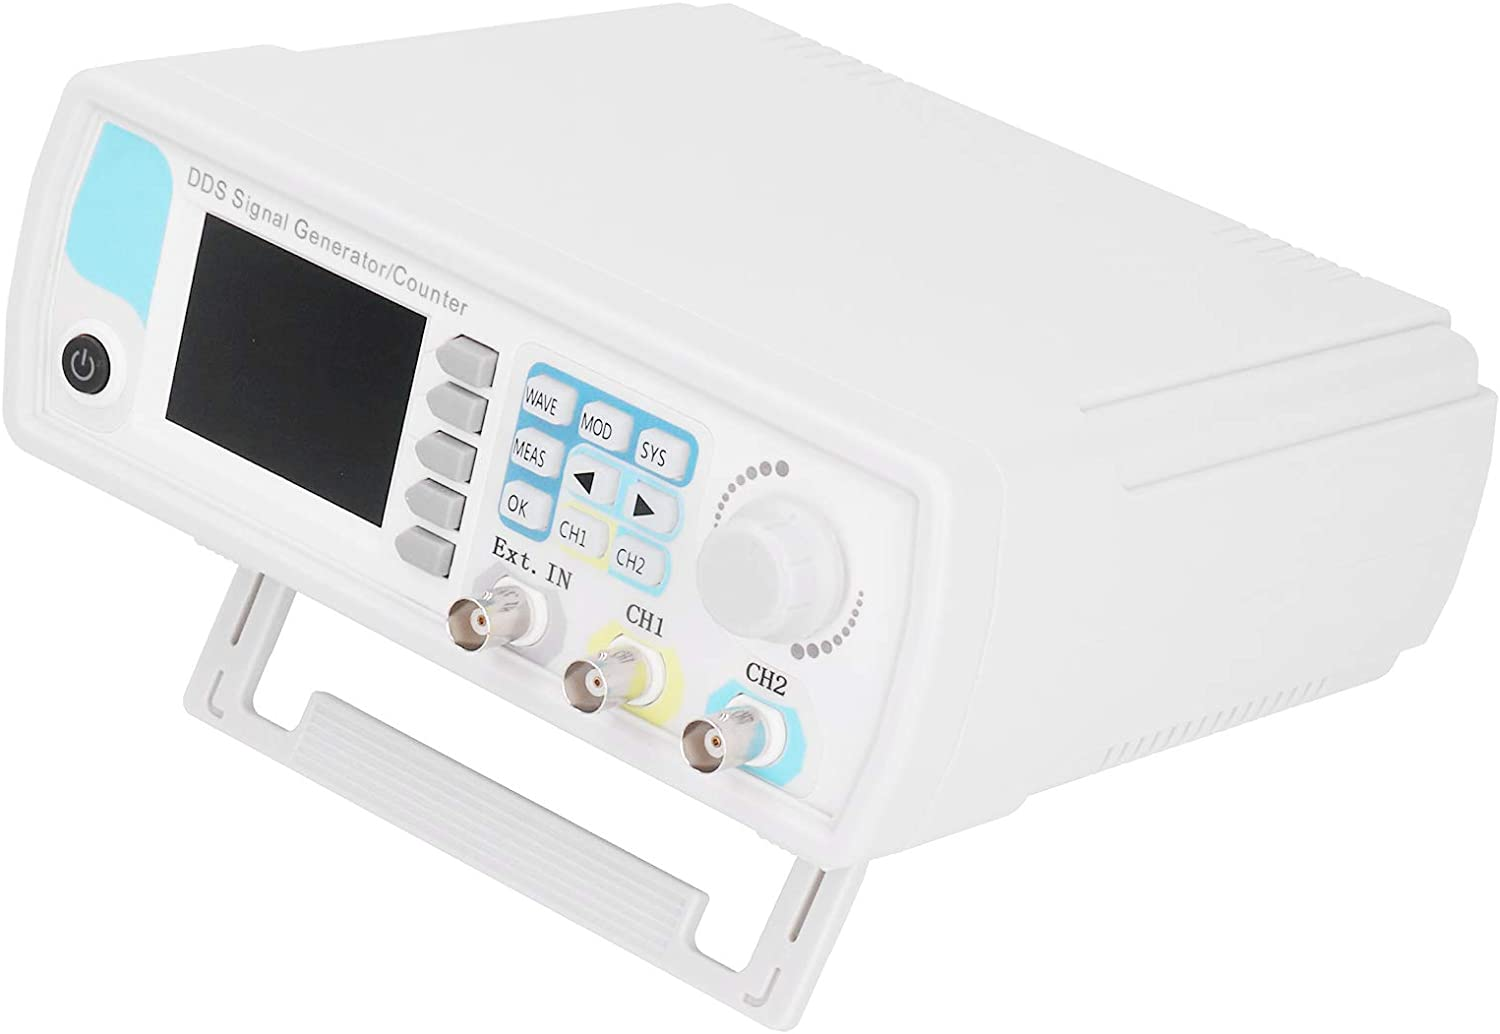 Dual Channel For Engineers For Line Test U.S. regulations Adjustable Counts Auto-range DDS Function Generator Signal Generator